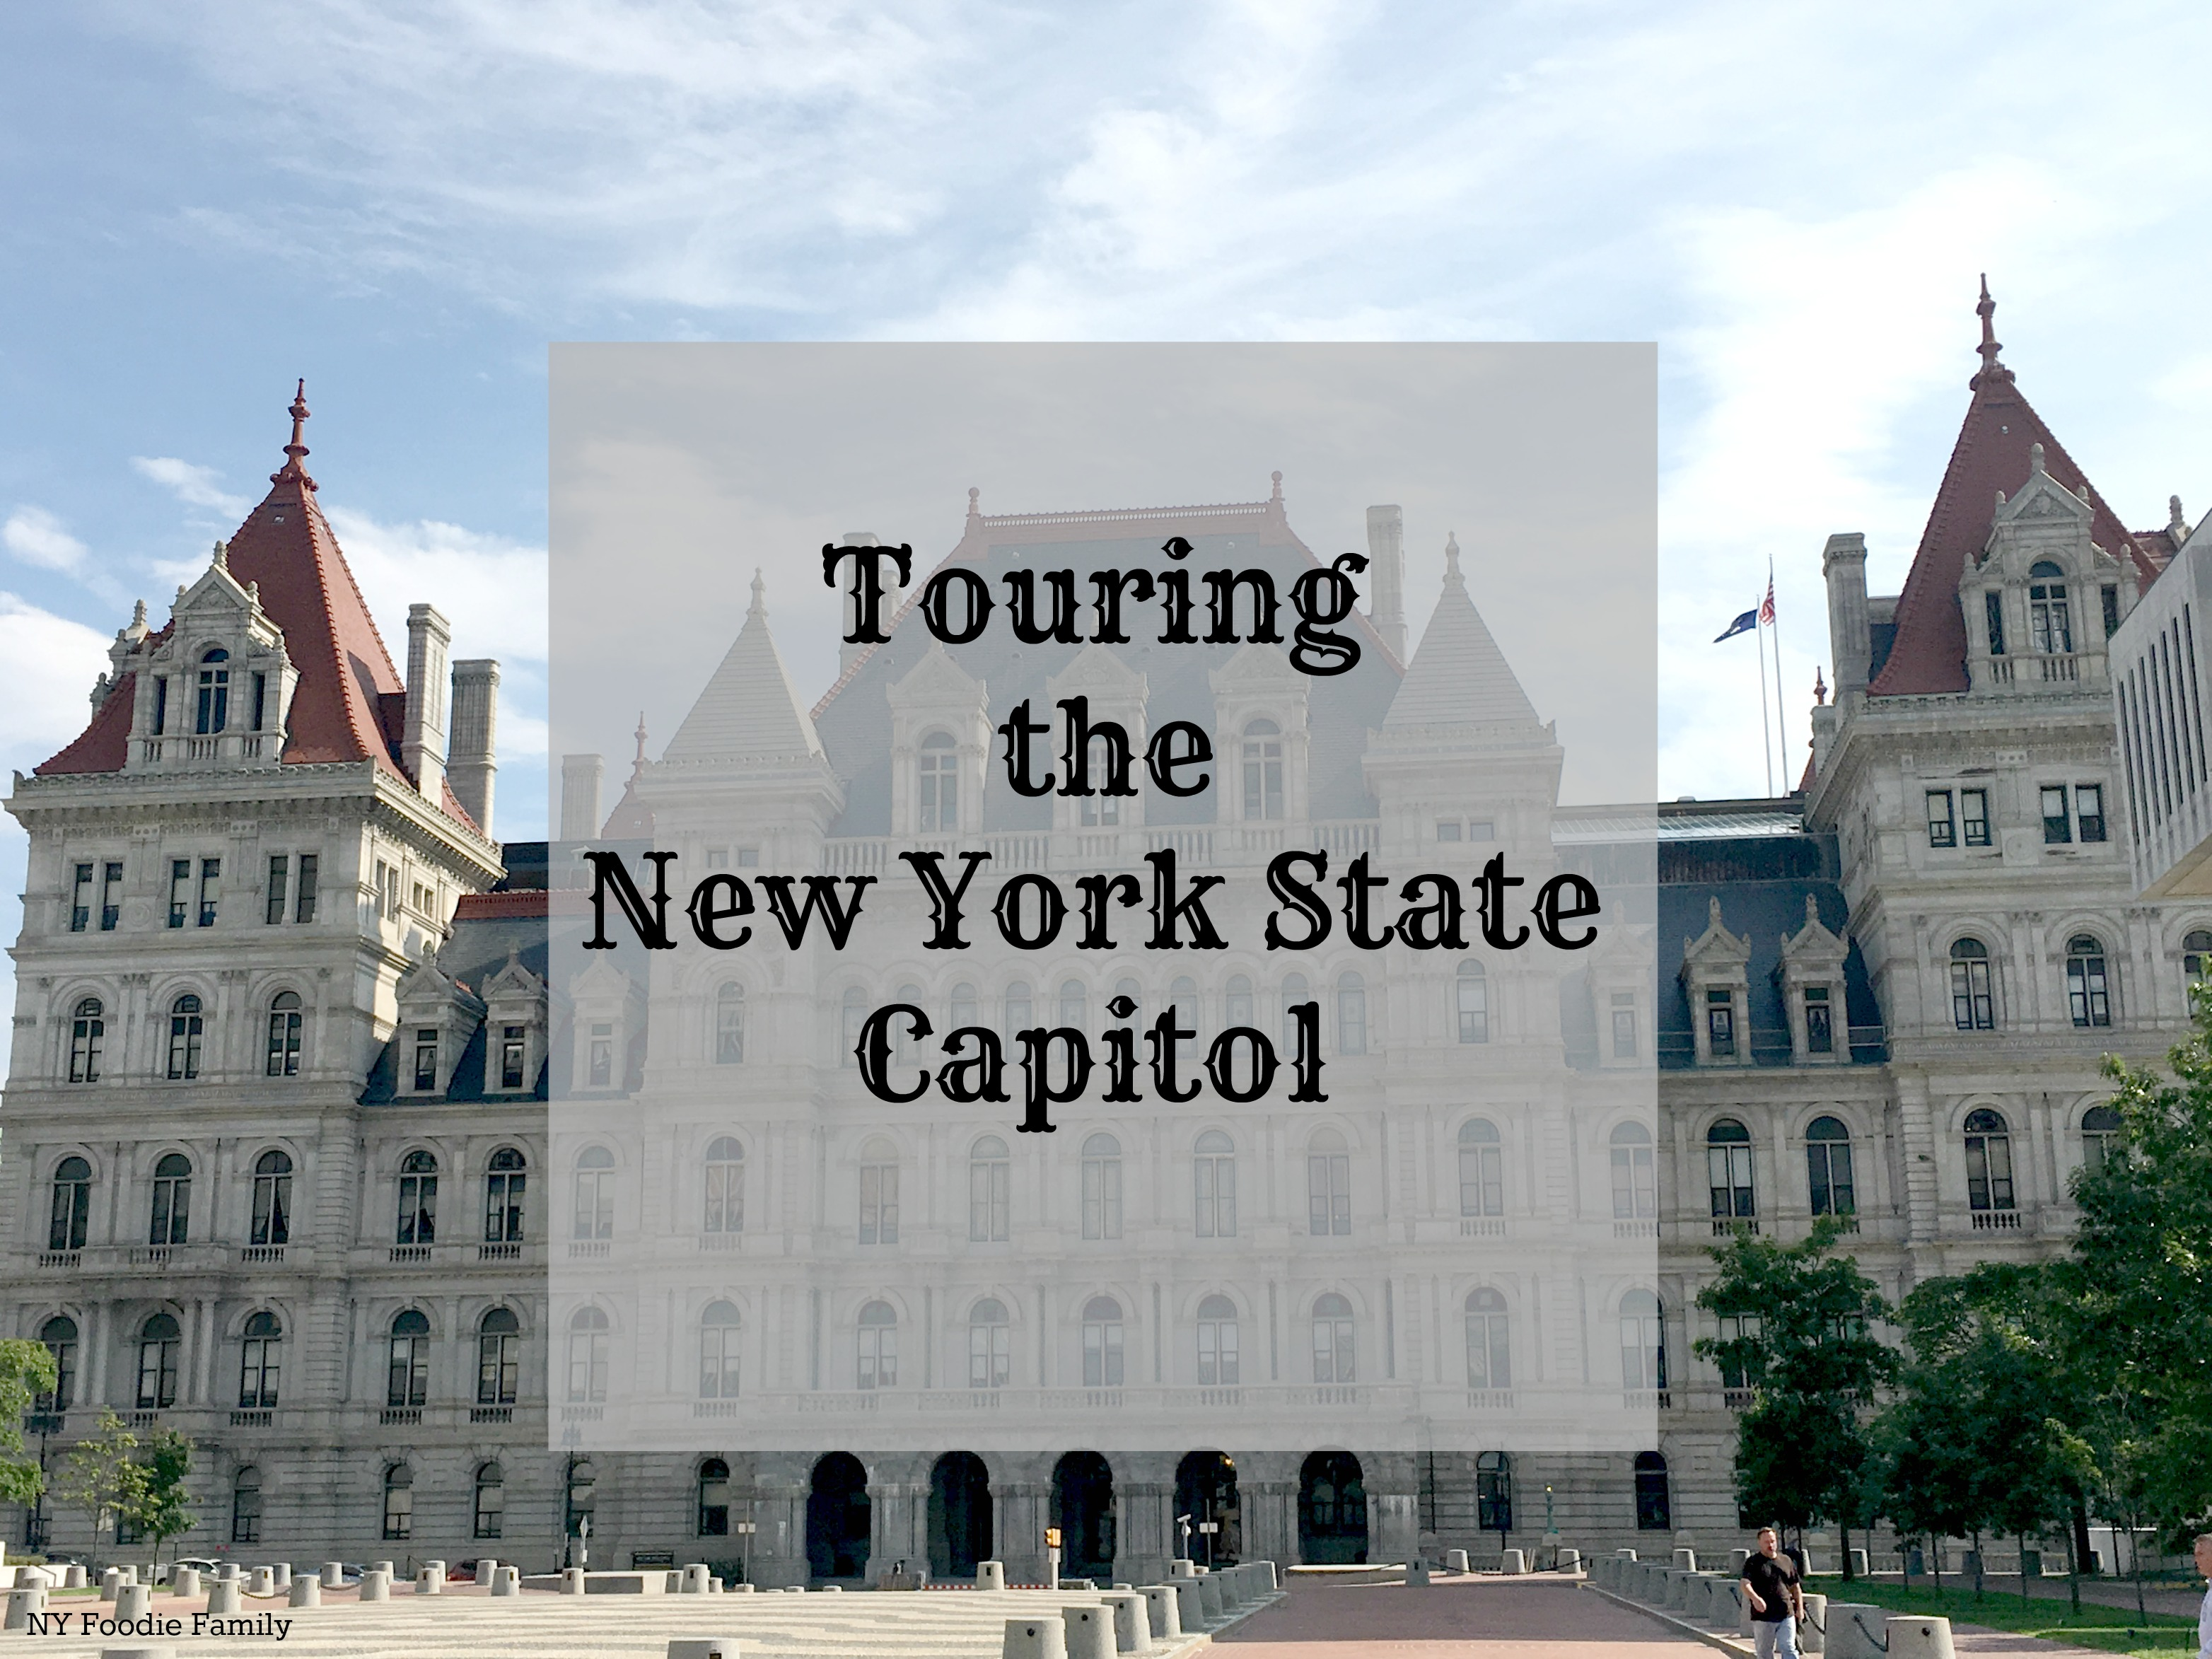 New york albany county albany 12224 - I Ve Been A Life Long Resident Of New York State And Somehow Made It To My Late 30 S Without Ever Visiting Our State Capitol Located In Albany It Is Just